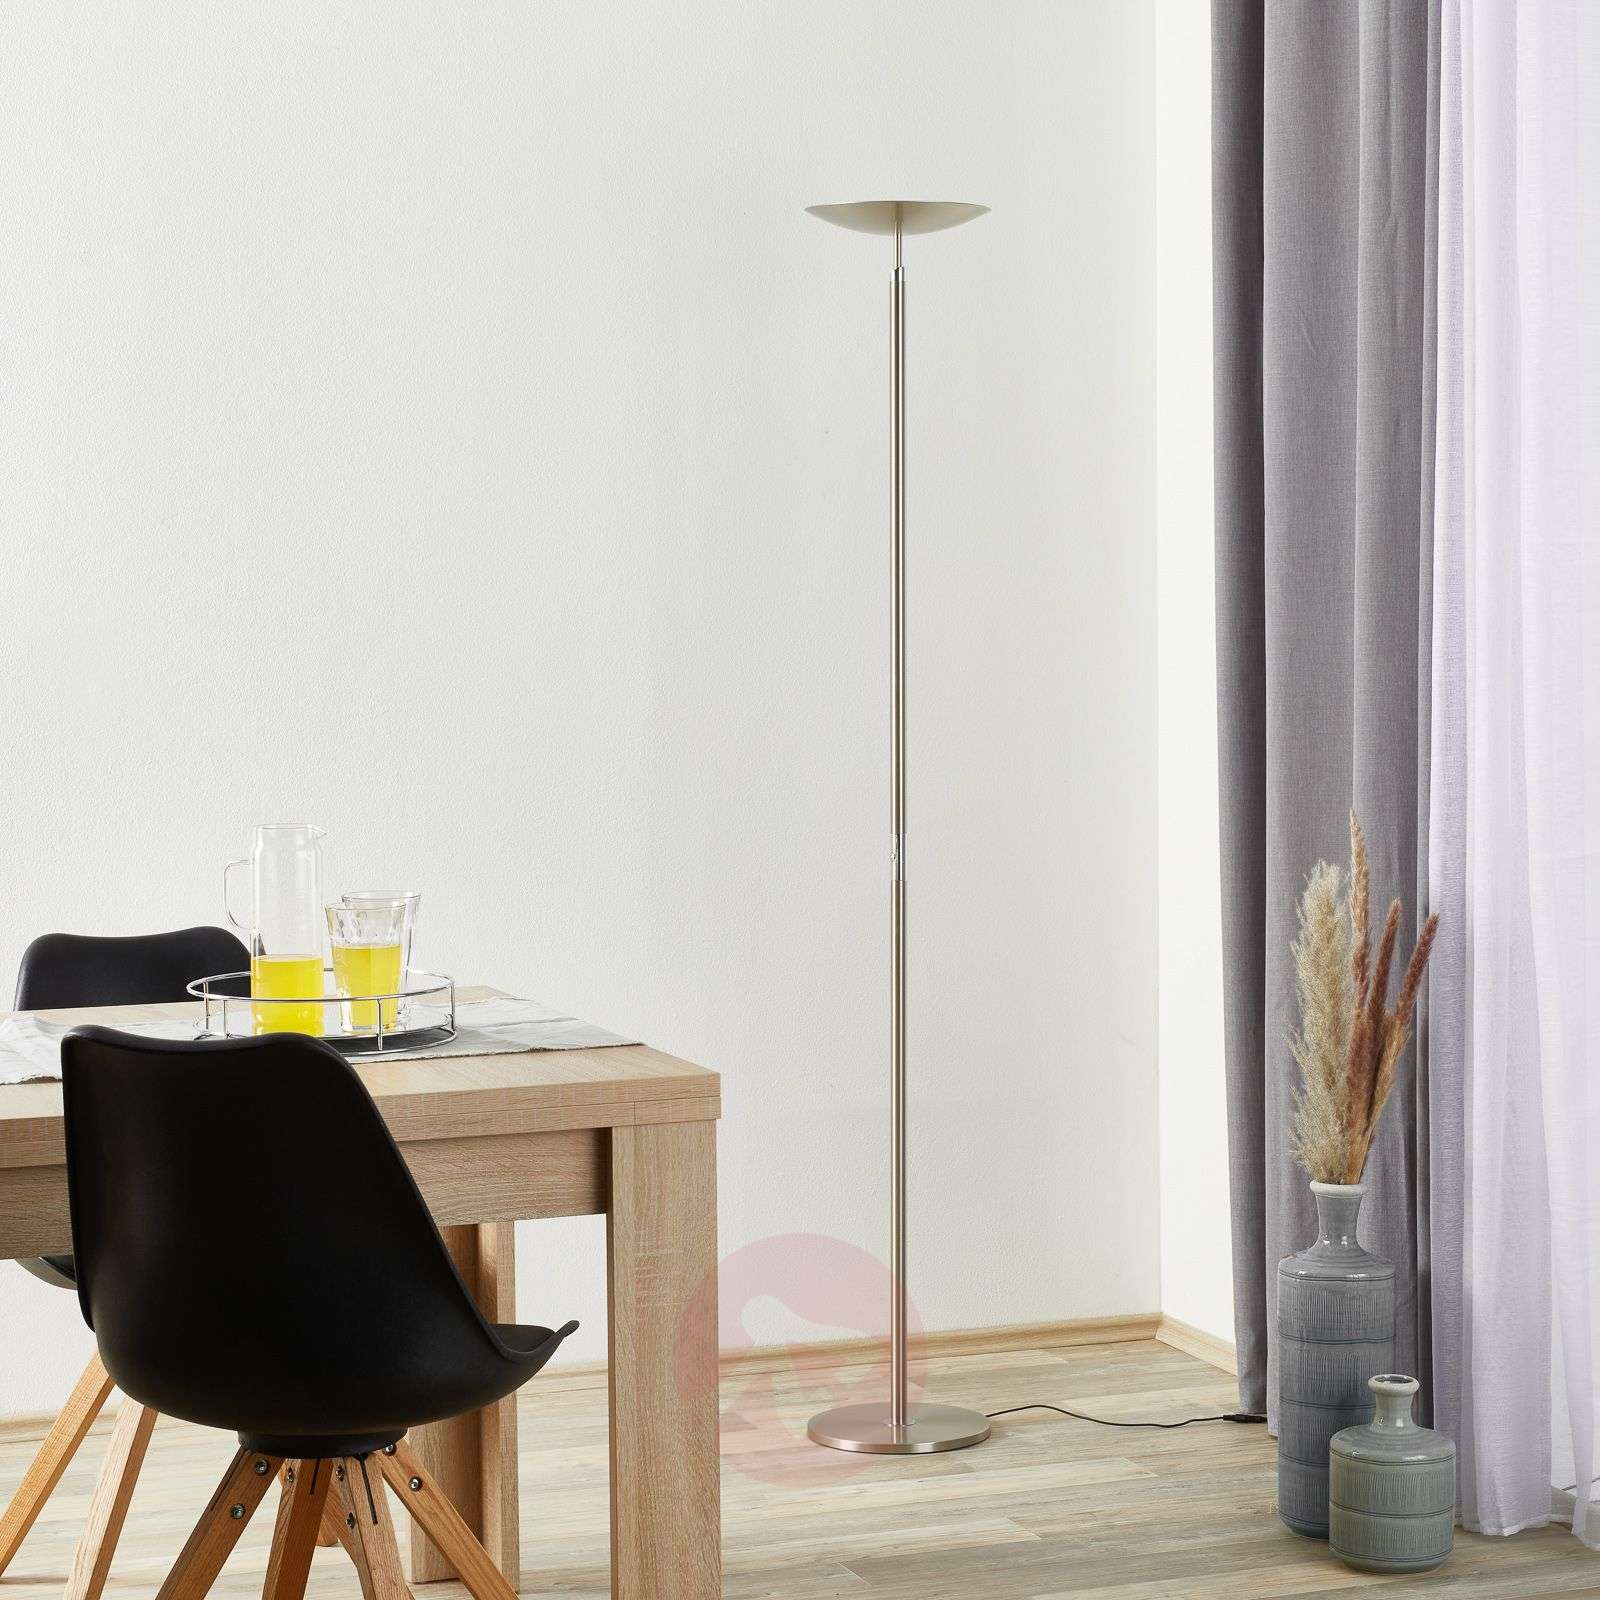 Lampadaire à éclairage indirect LED Nikolei-4002581-01